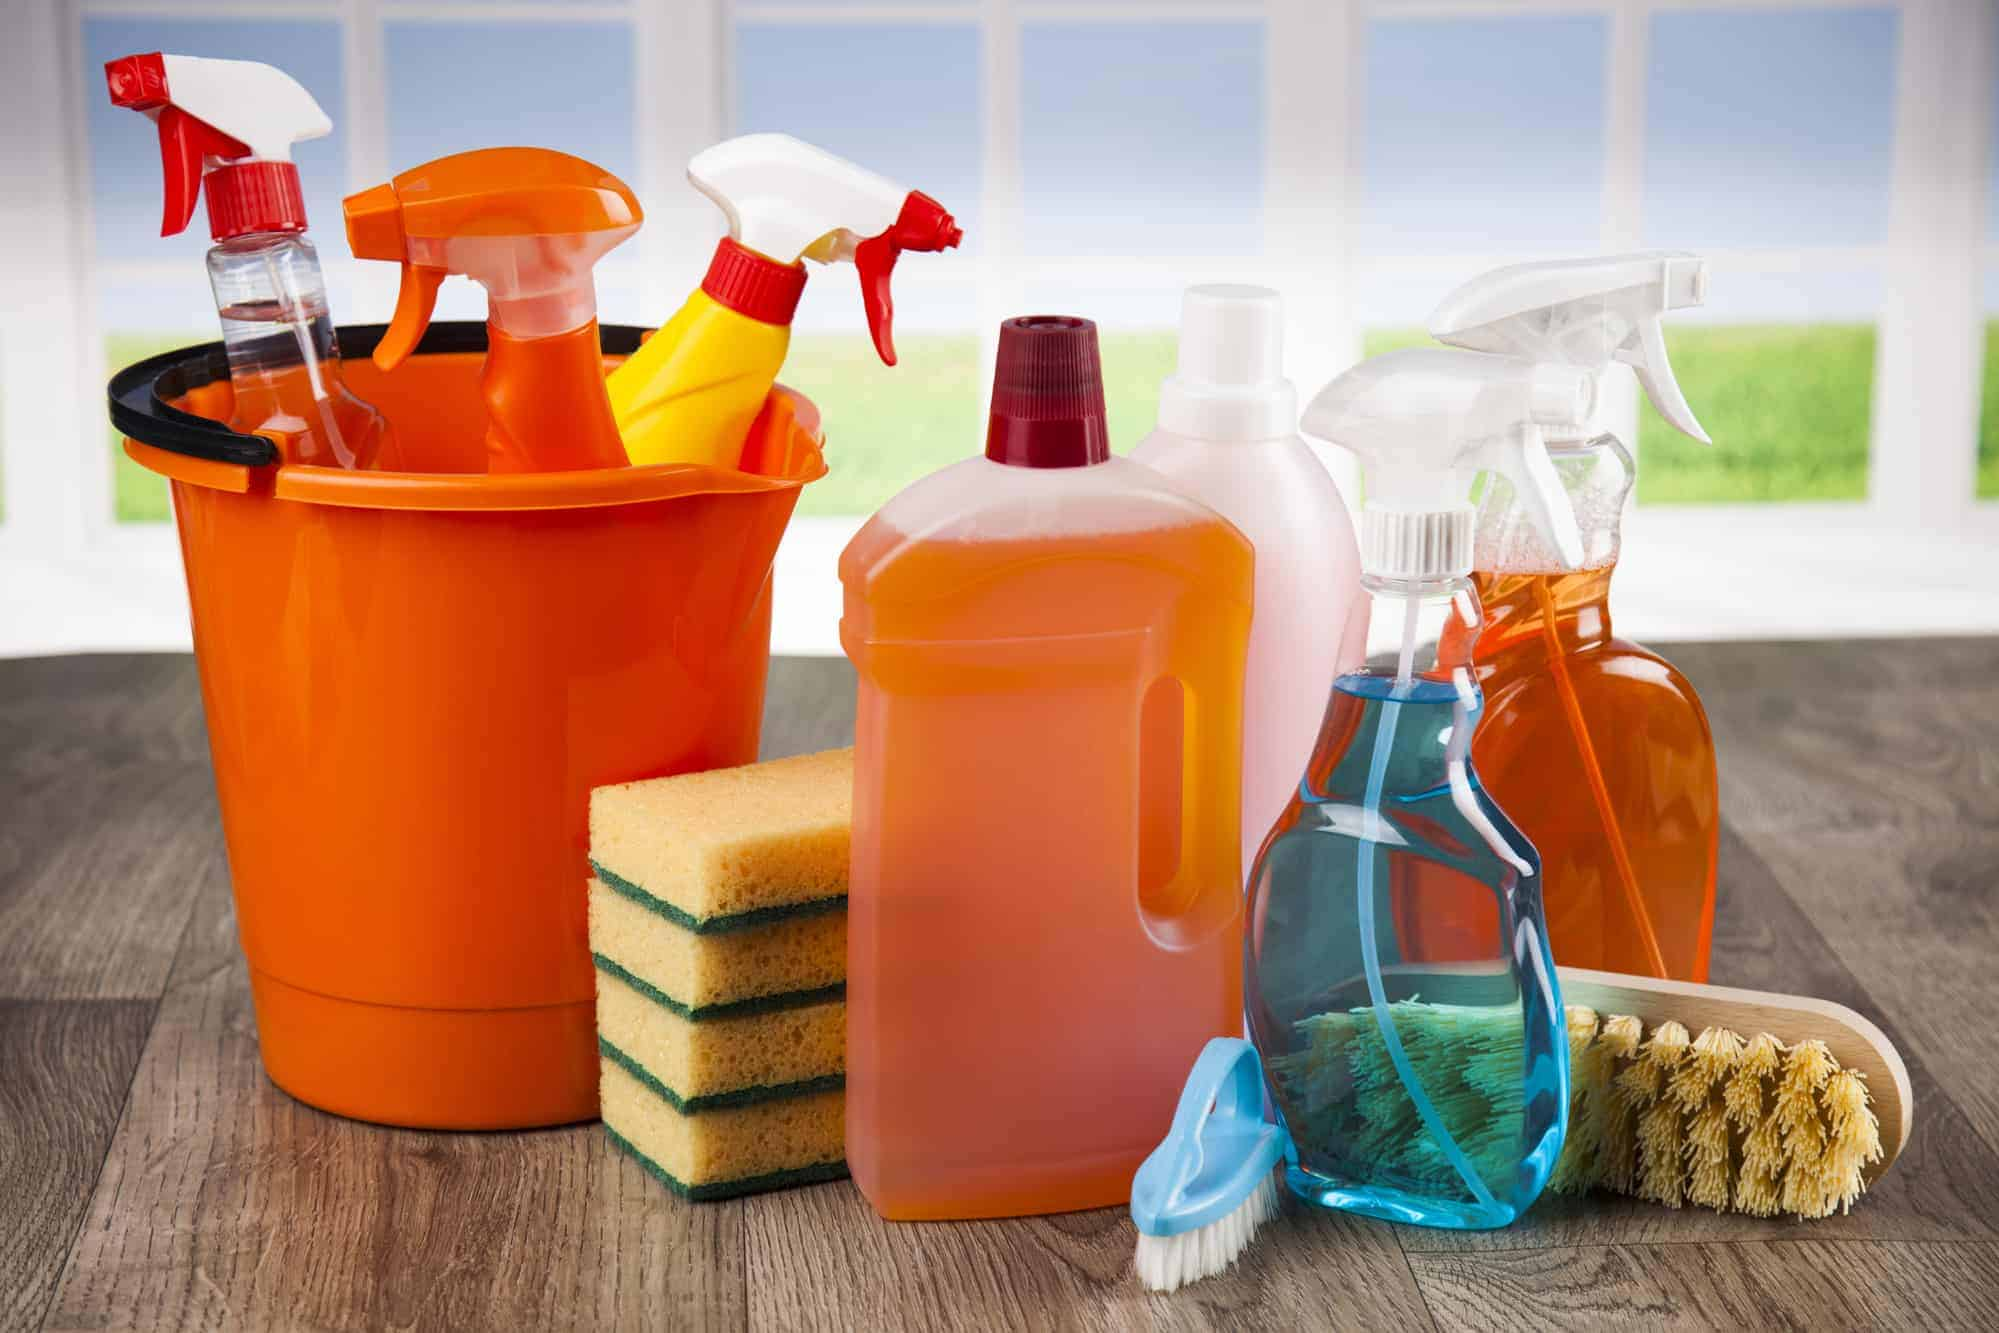 House cleaning product and window background